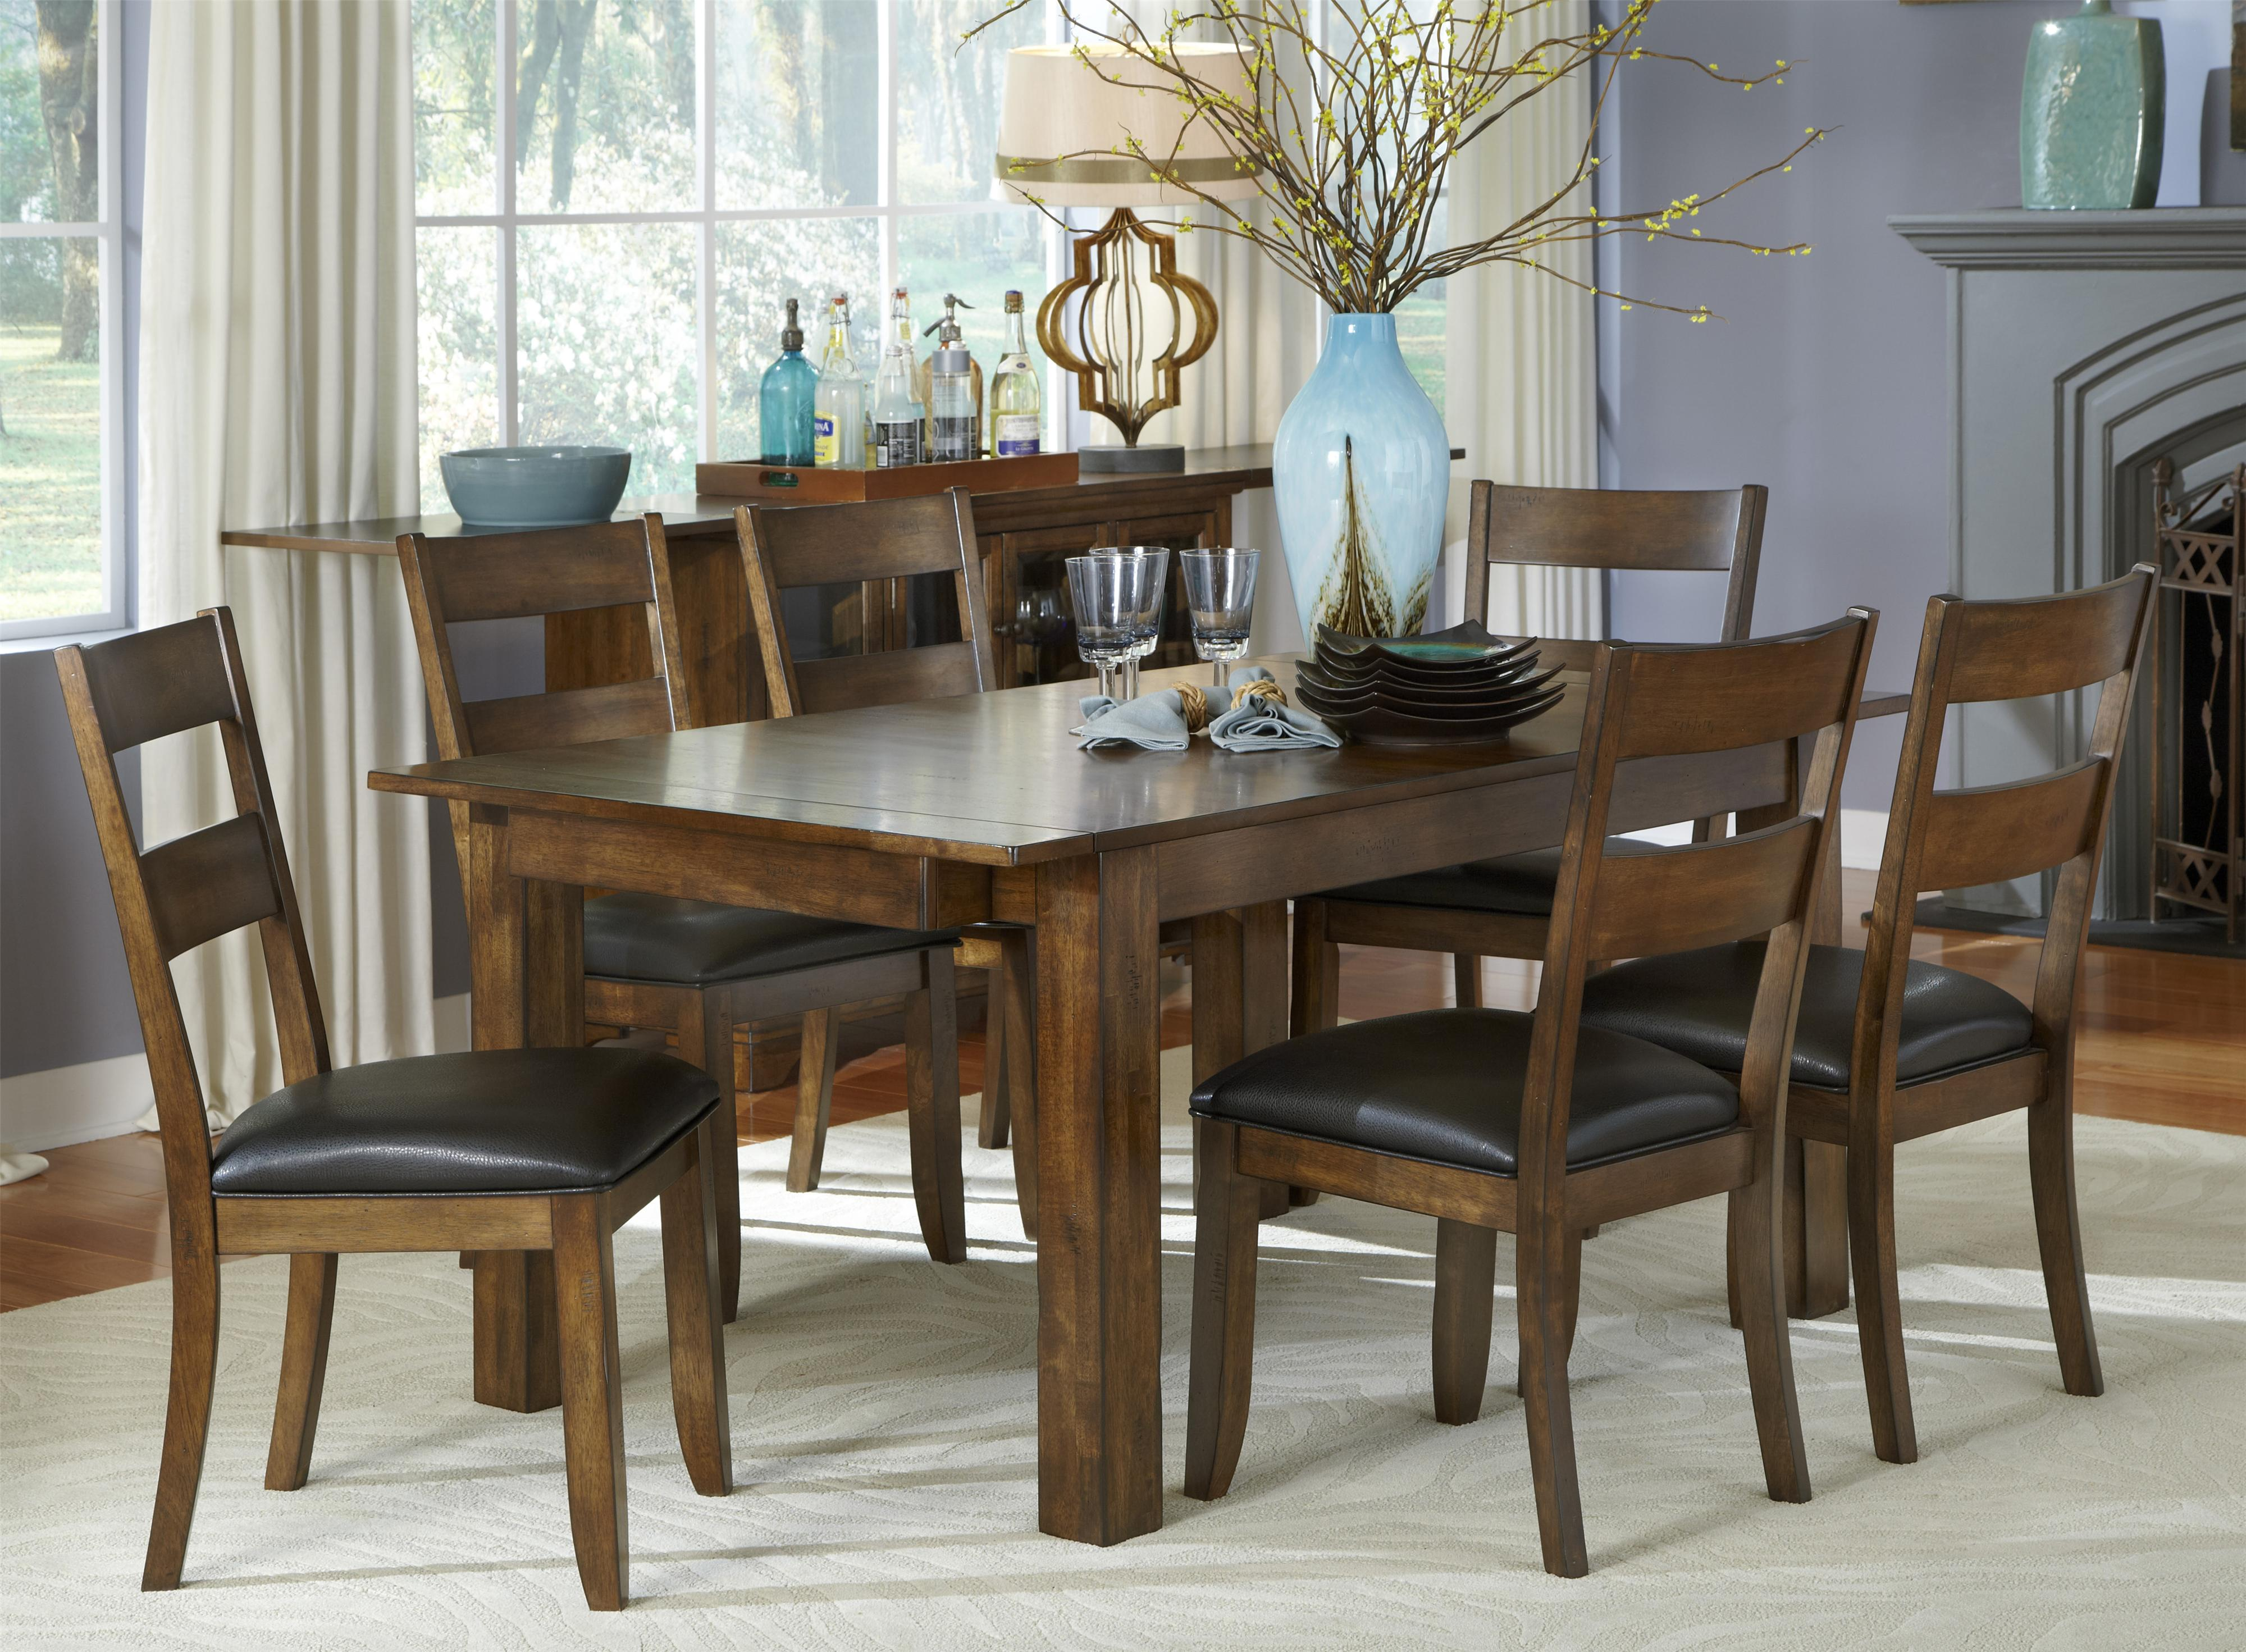 AAmerica Mariposa 7 Piece Table and Chairs Set - Item Number: MRP-RW-6-20-0+6x2-55-K